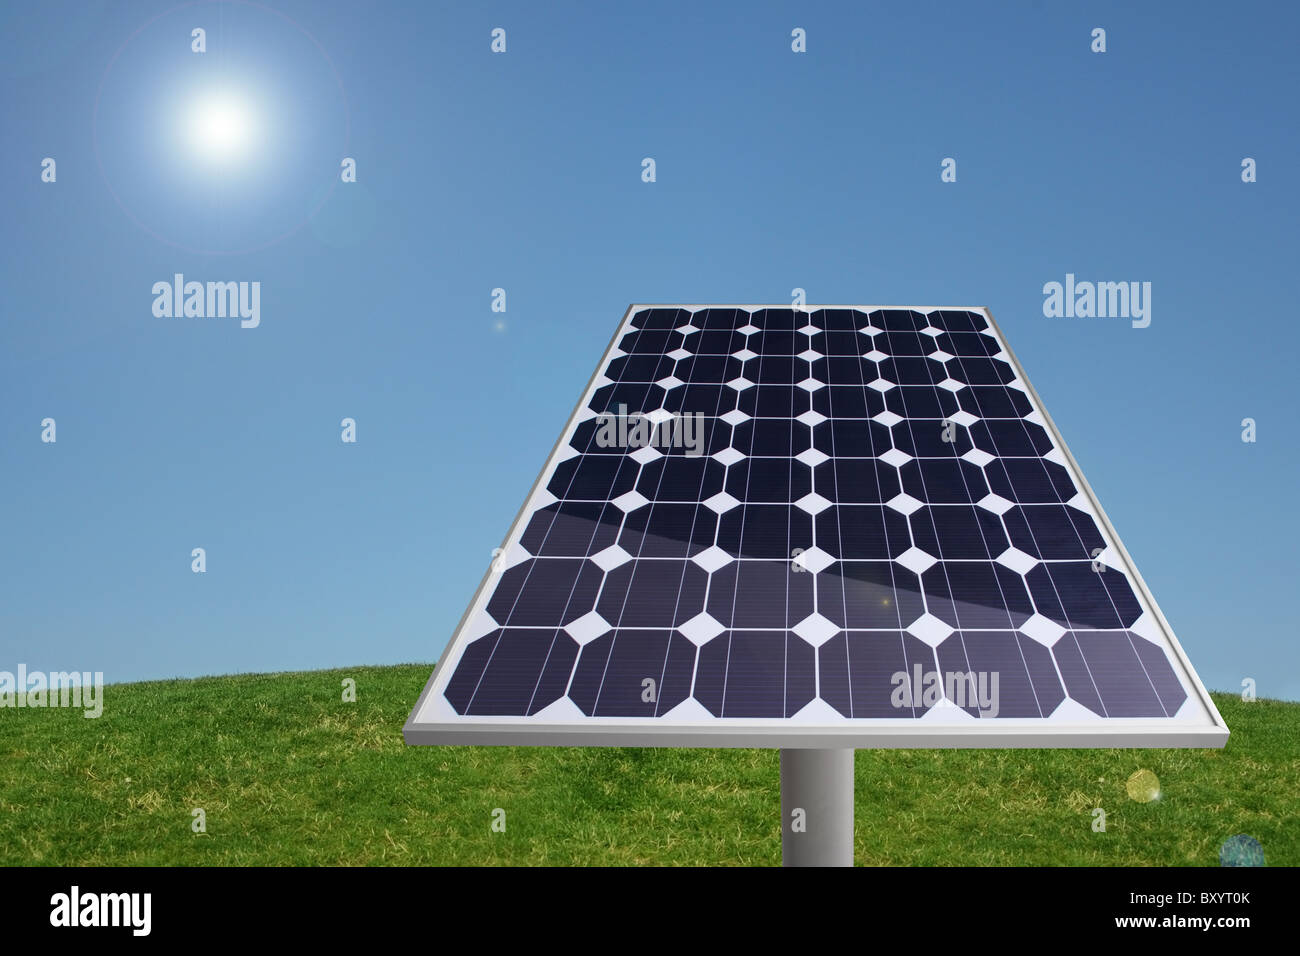 Solar panel in grass with blue sky - Stock Image